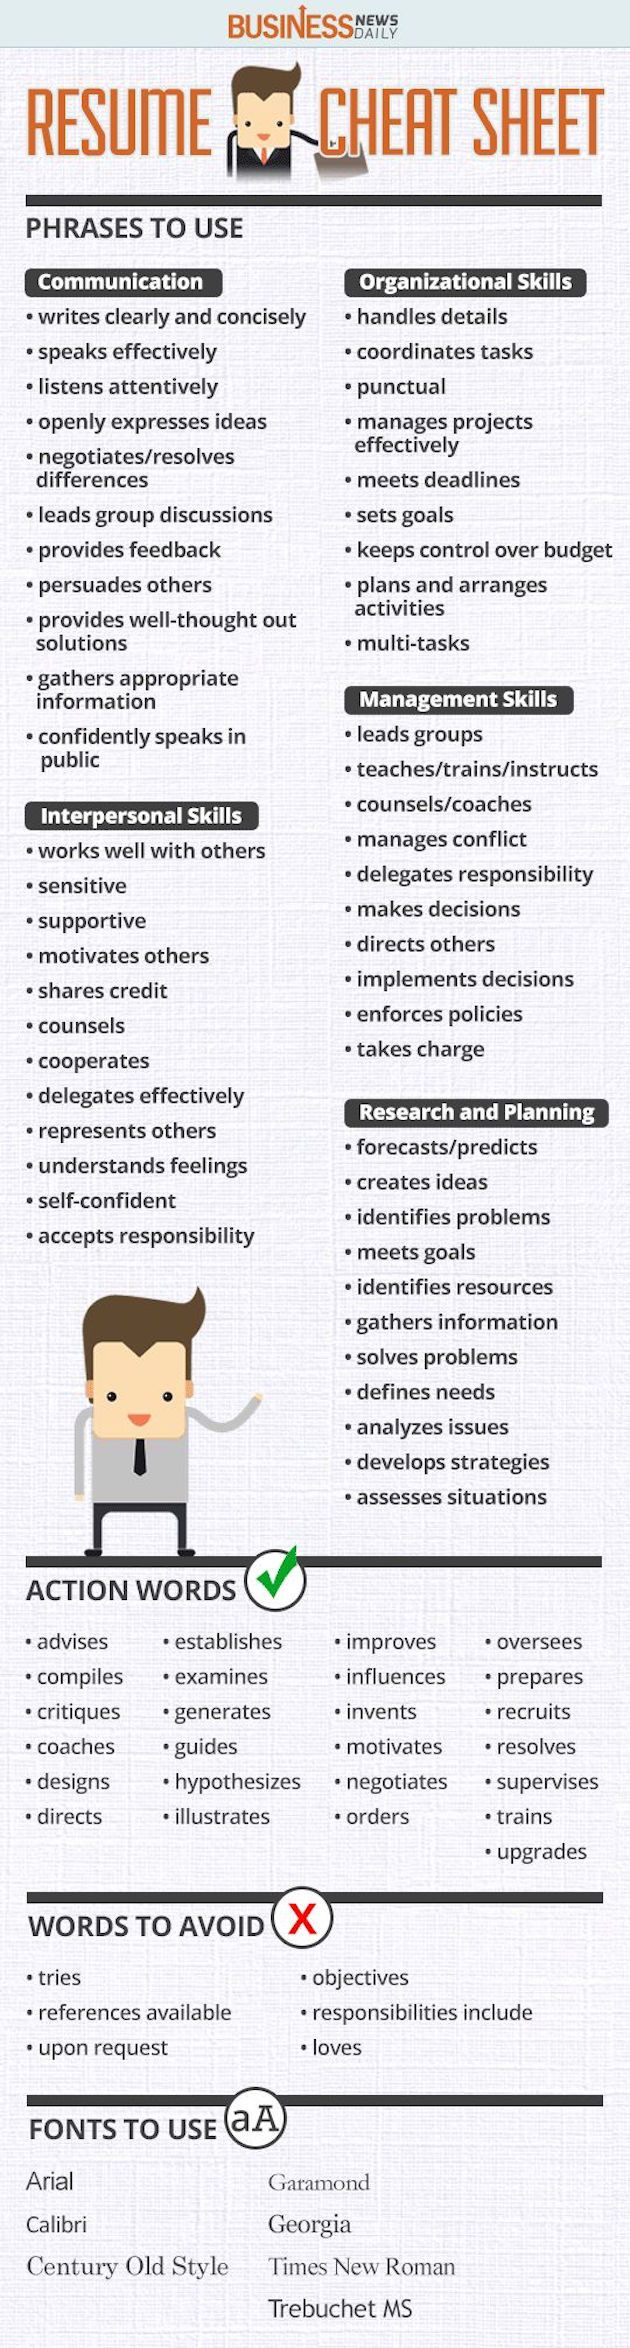 Resume Should You Use The Word I In A Resume best 25 resume words ideas on pinterest these are all the you should use a to make your normal skills